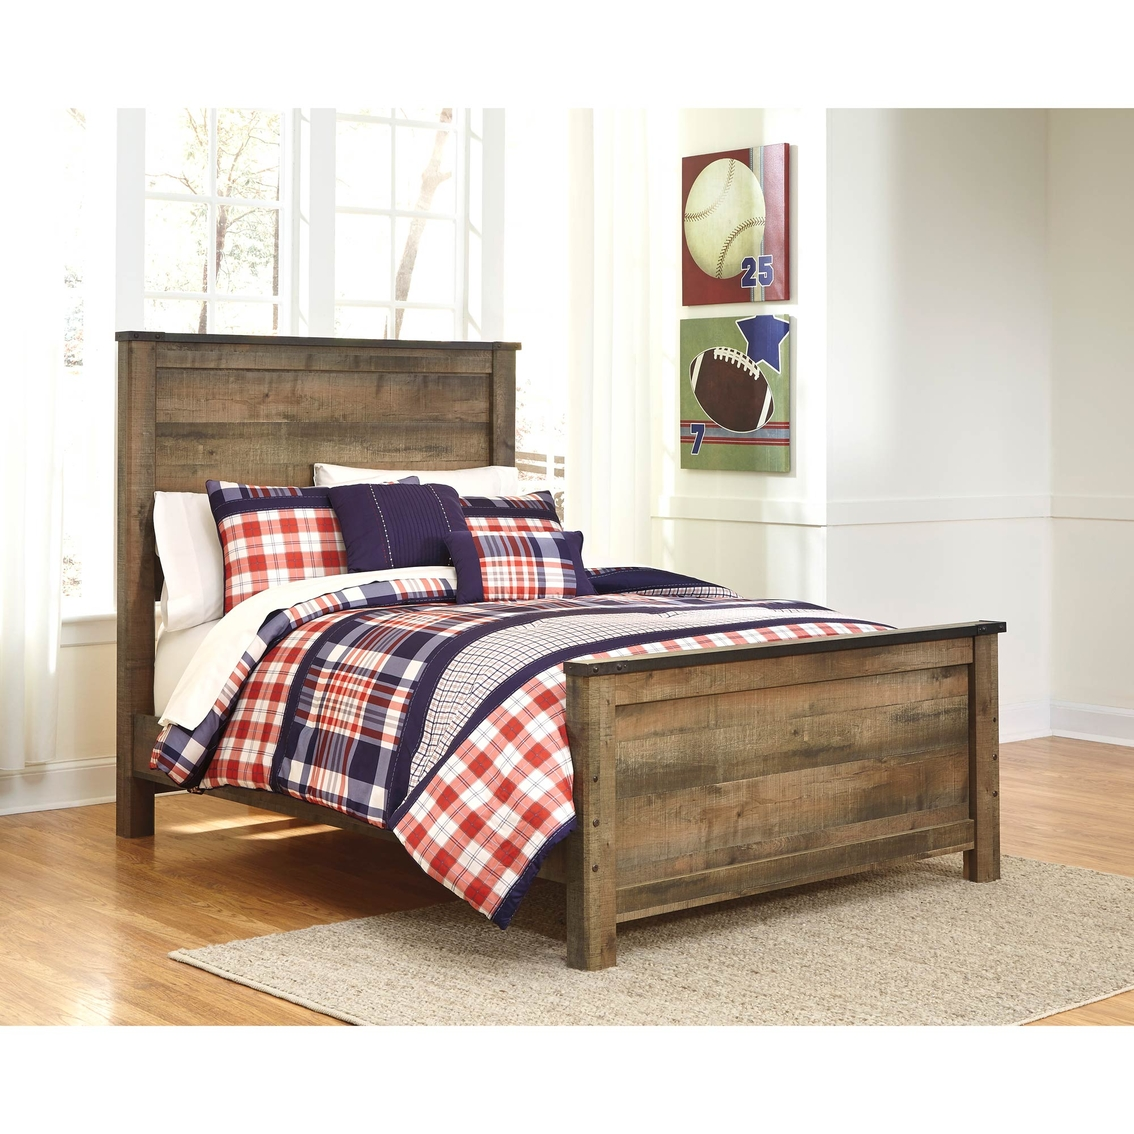 Ashley Furniture Online Shopping: Ashley Trinell Full Panel Bed